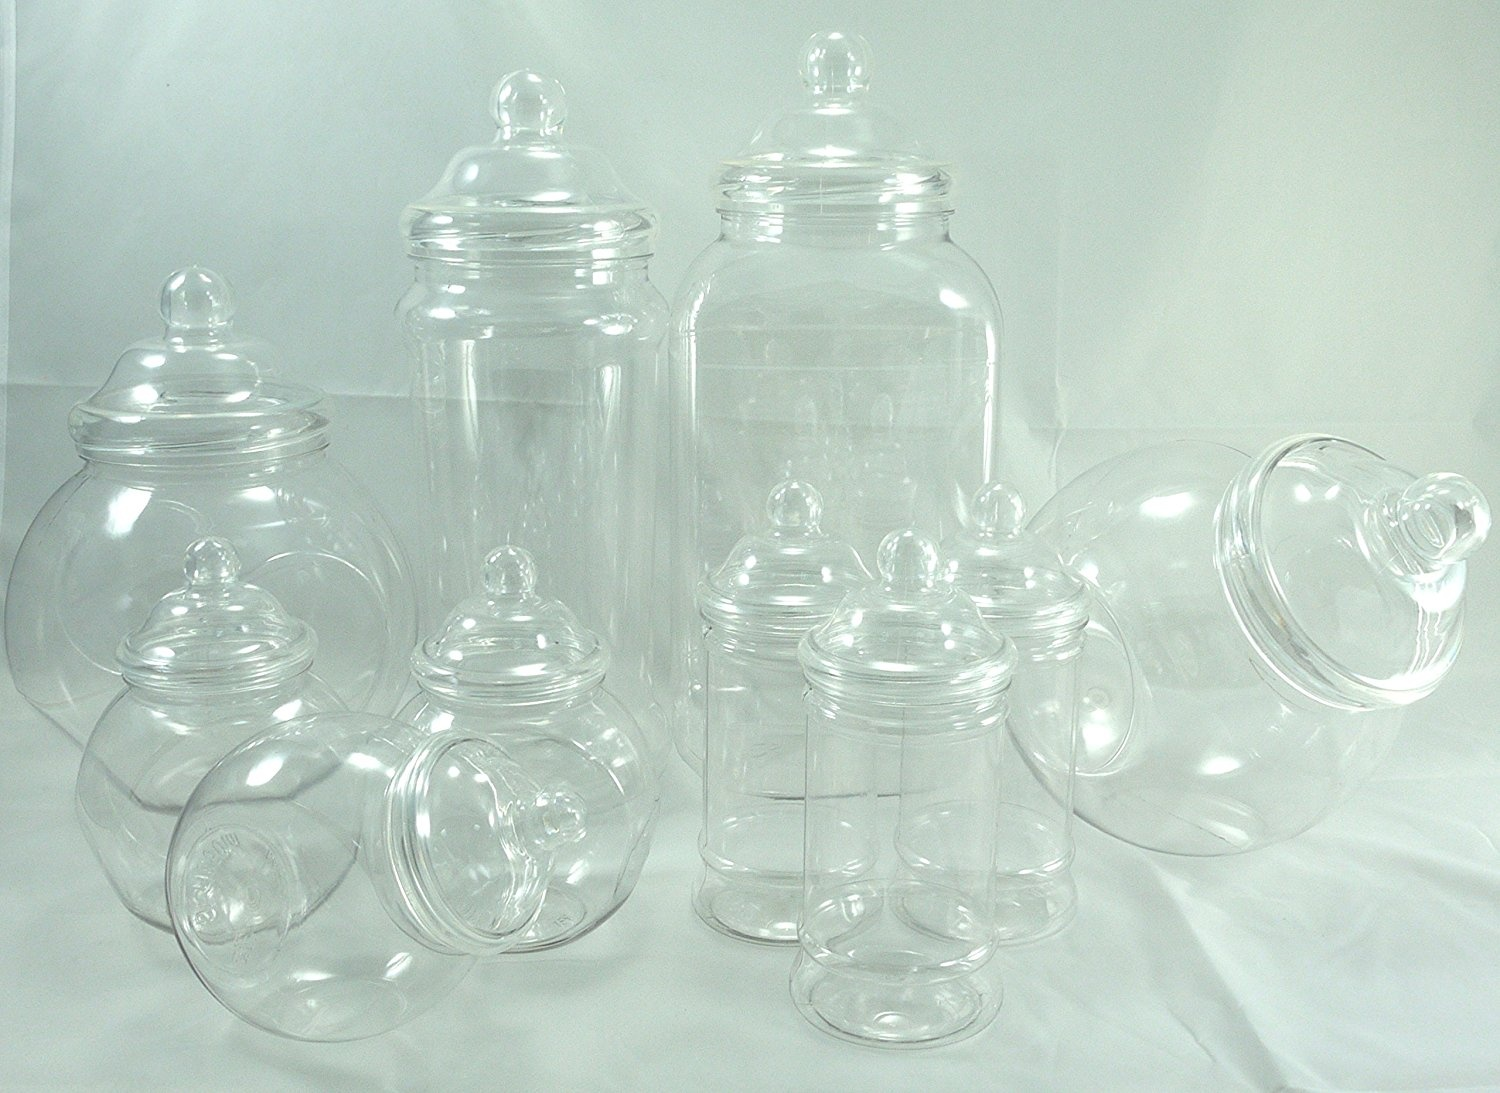 e51e1202375e PLASTIC JAR PARTY PACK OF 10 ASSORTED EMPTY CLEAR PLASTIC JARS WITH  DECORATIVE VICTORIAN STYLE BOBBLE SCREW TOP LIDS by Britten & James®. Brand  new ...